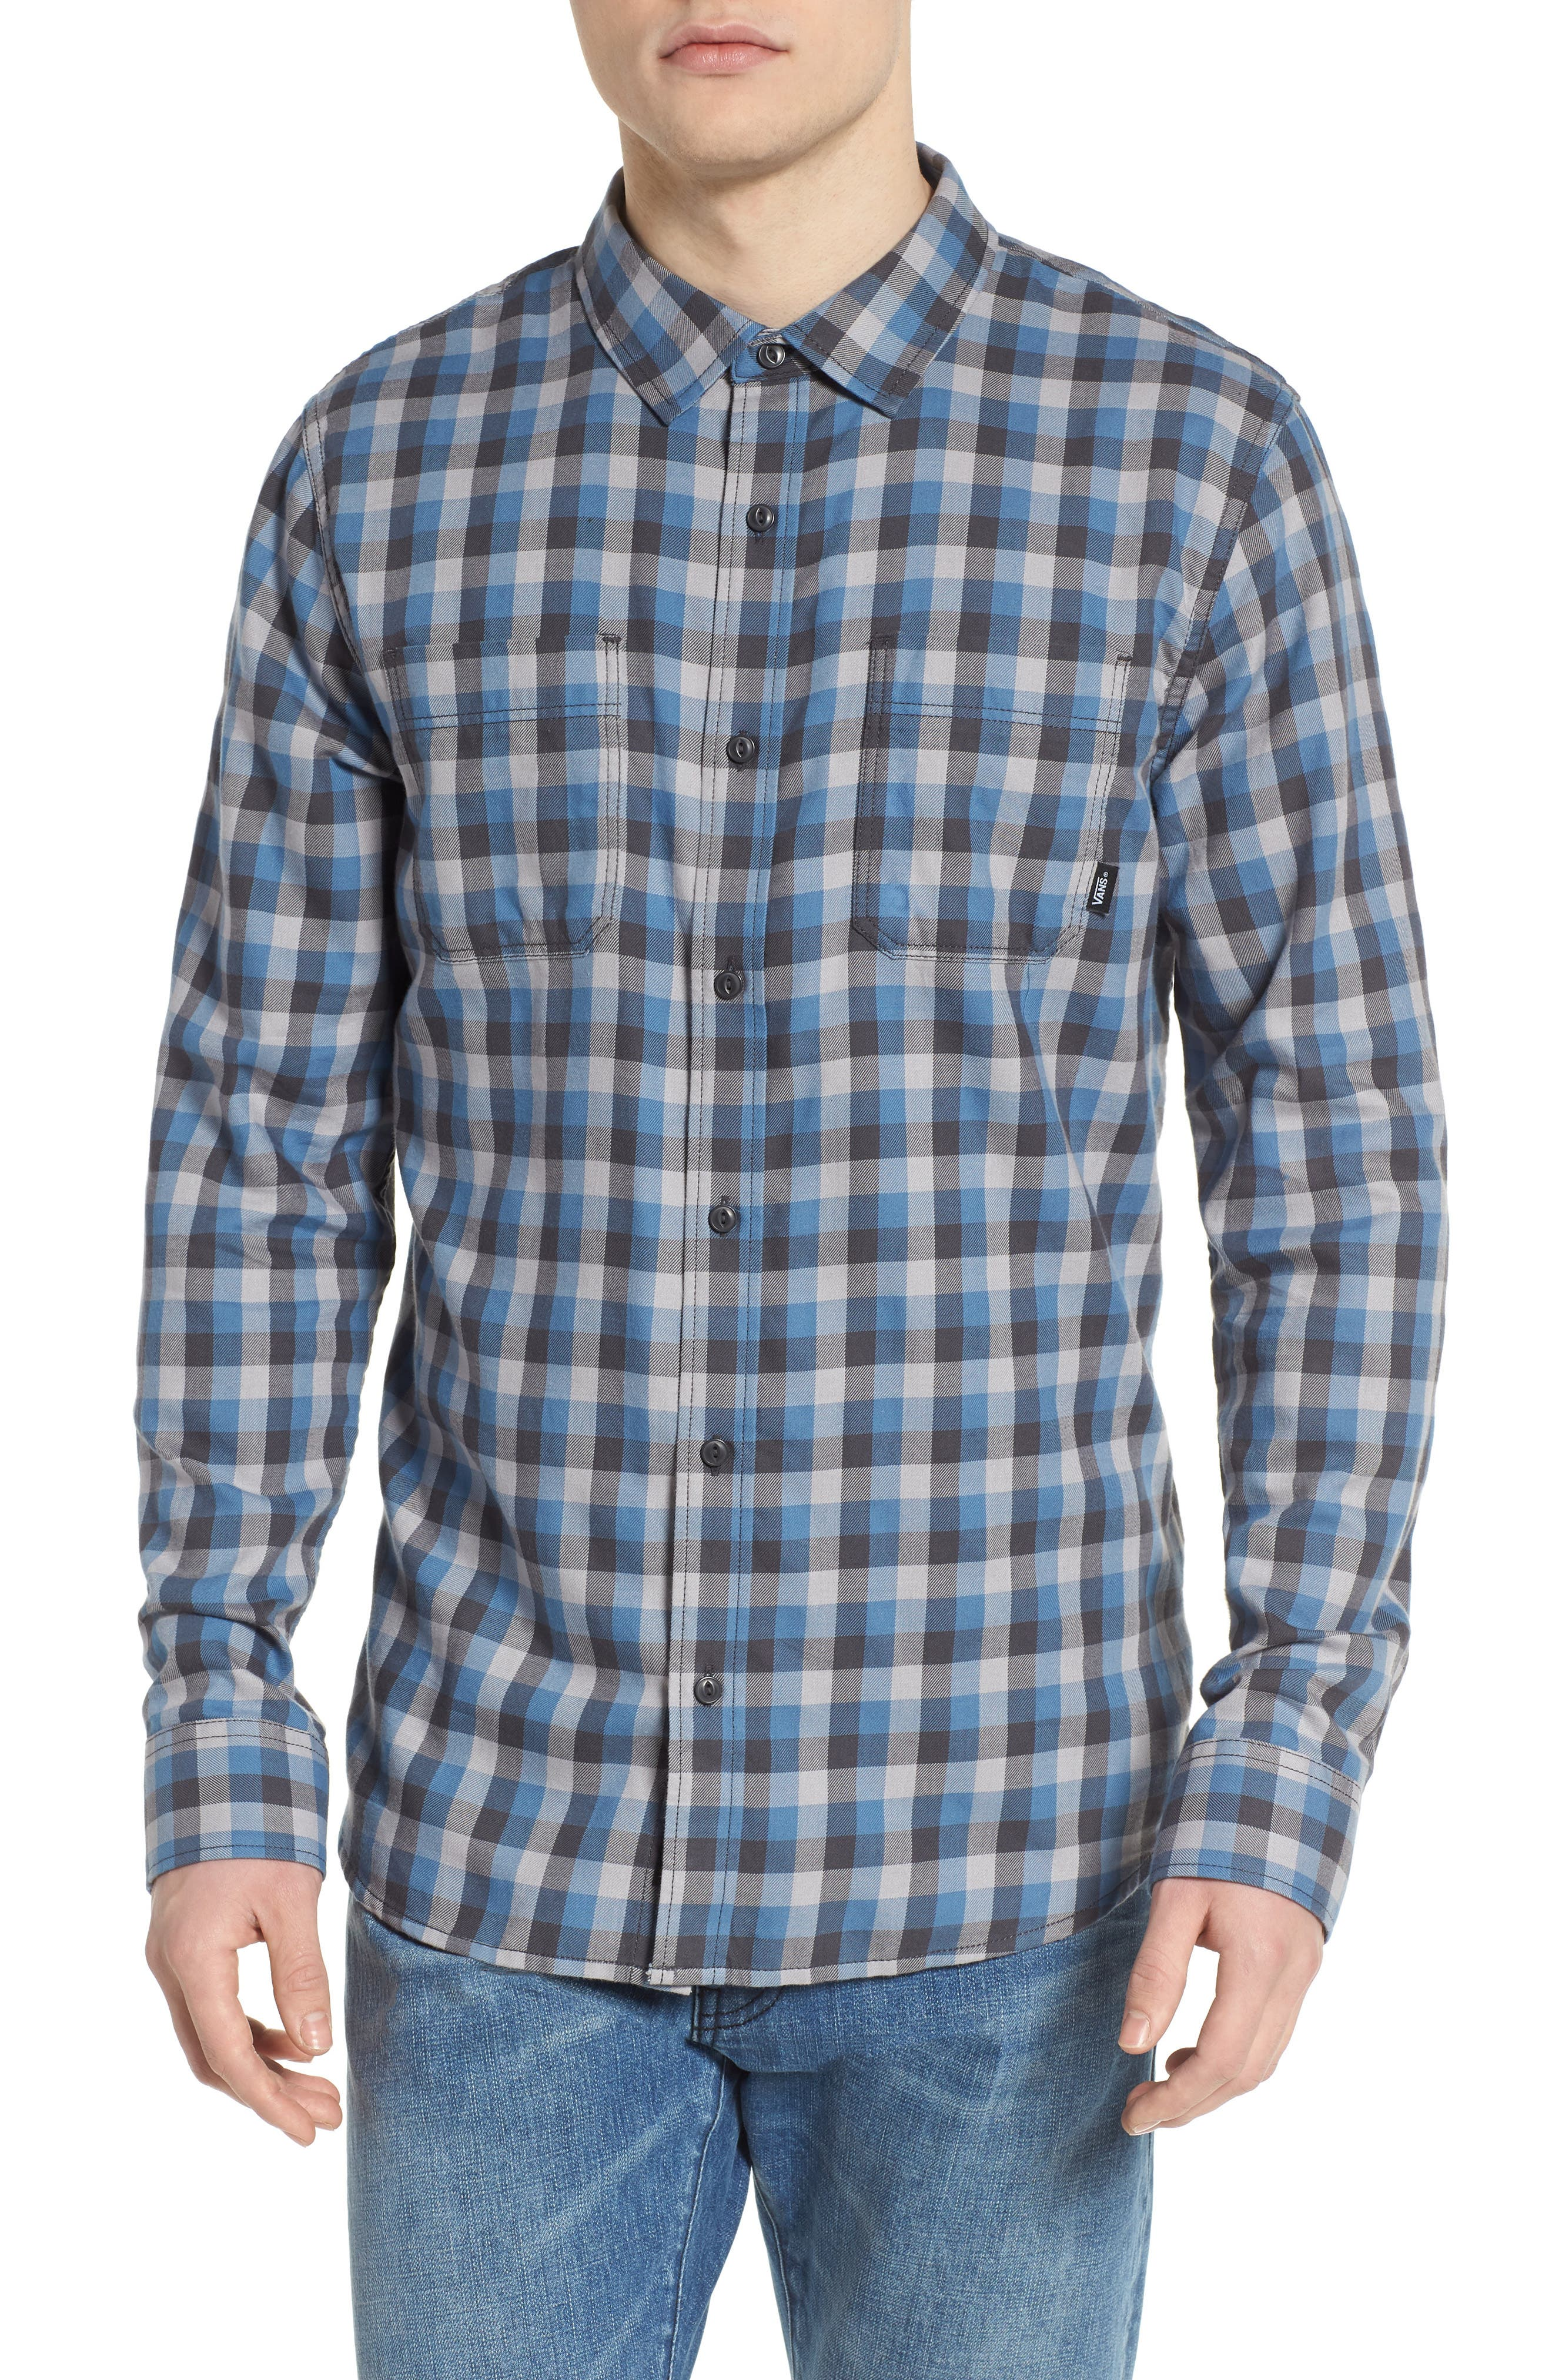 Alameda II Plaid Flannel Shirt,                             Main thumbnail 1, color,                             Asphalt/ Copen Blue